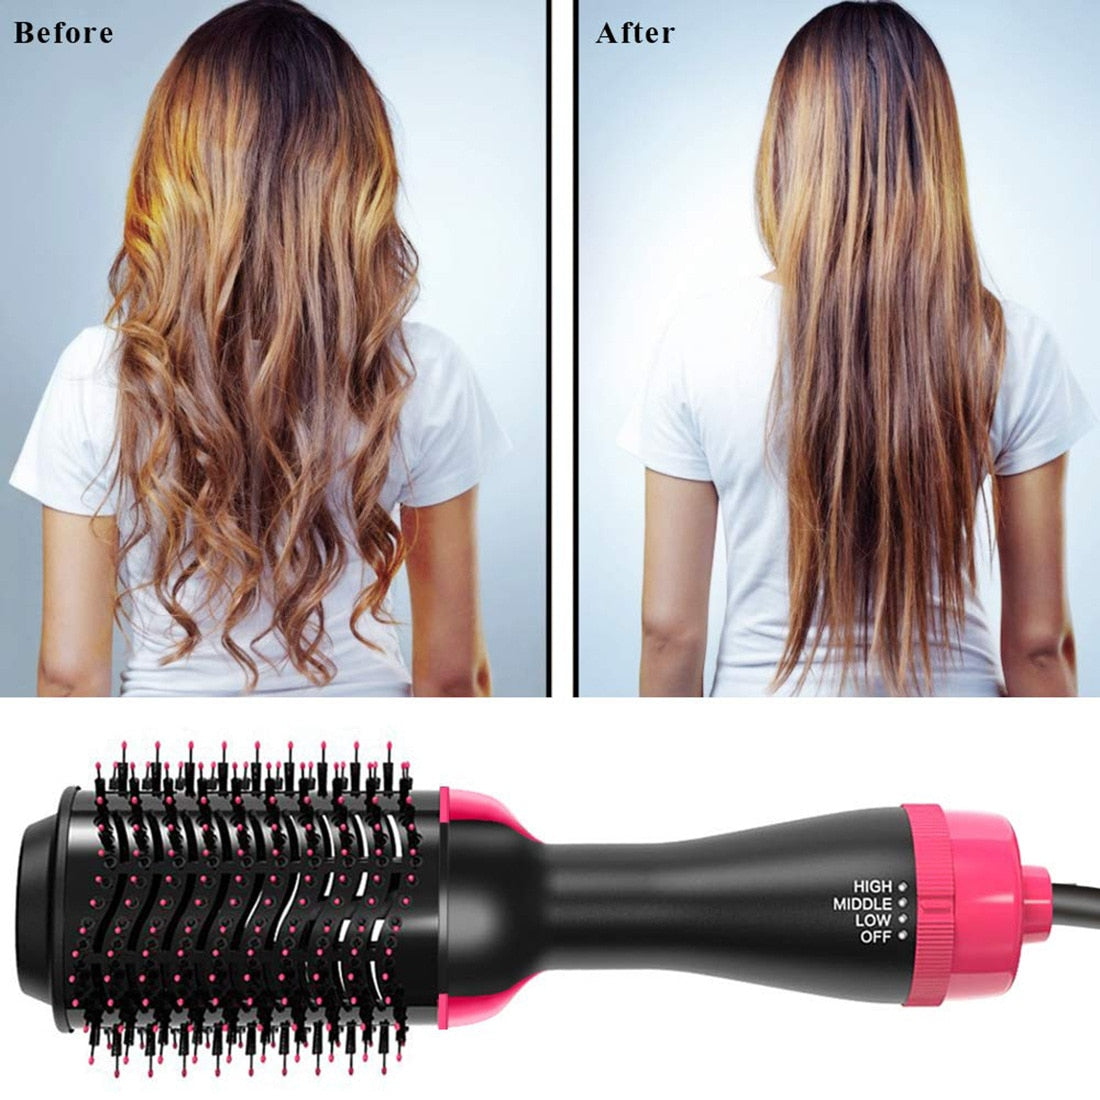 One Step Hair Dryer and Volumizer 2 in 1 Hot Air Brush Professional Blow Dryer Comb Curling Iron Hair Straightener Brush